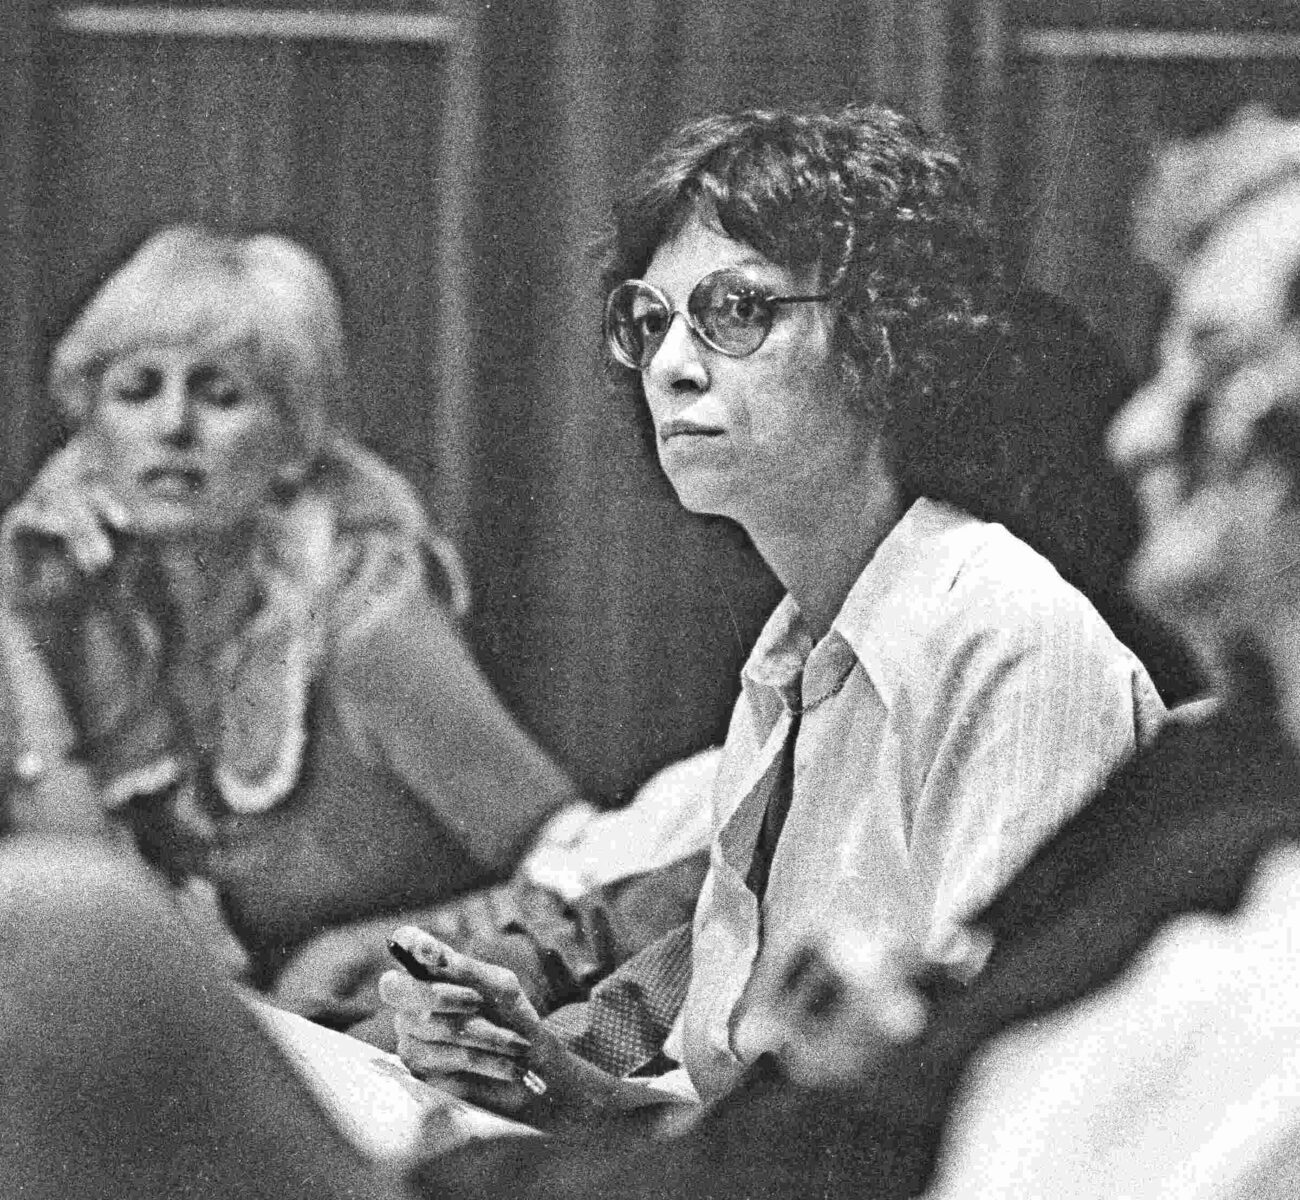 There's an entire library of Ted Bundy films at our disposal, but what about his wife, Carole Ann Boone? Should she get her own movie? Dive into the deets.